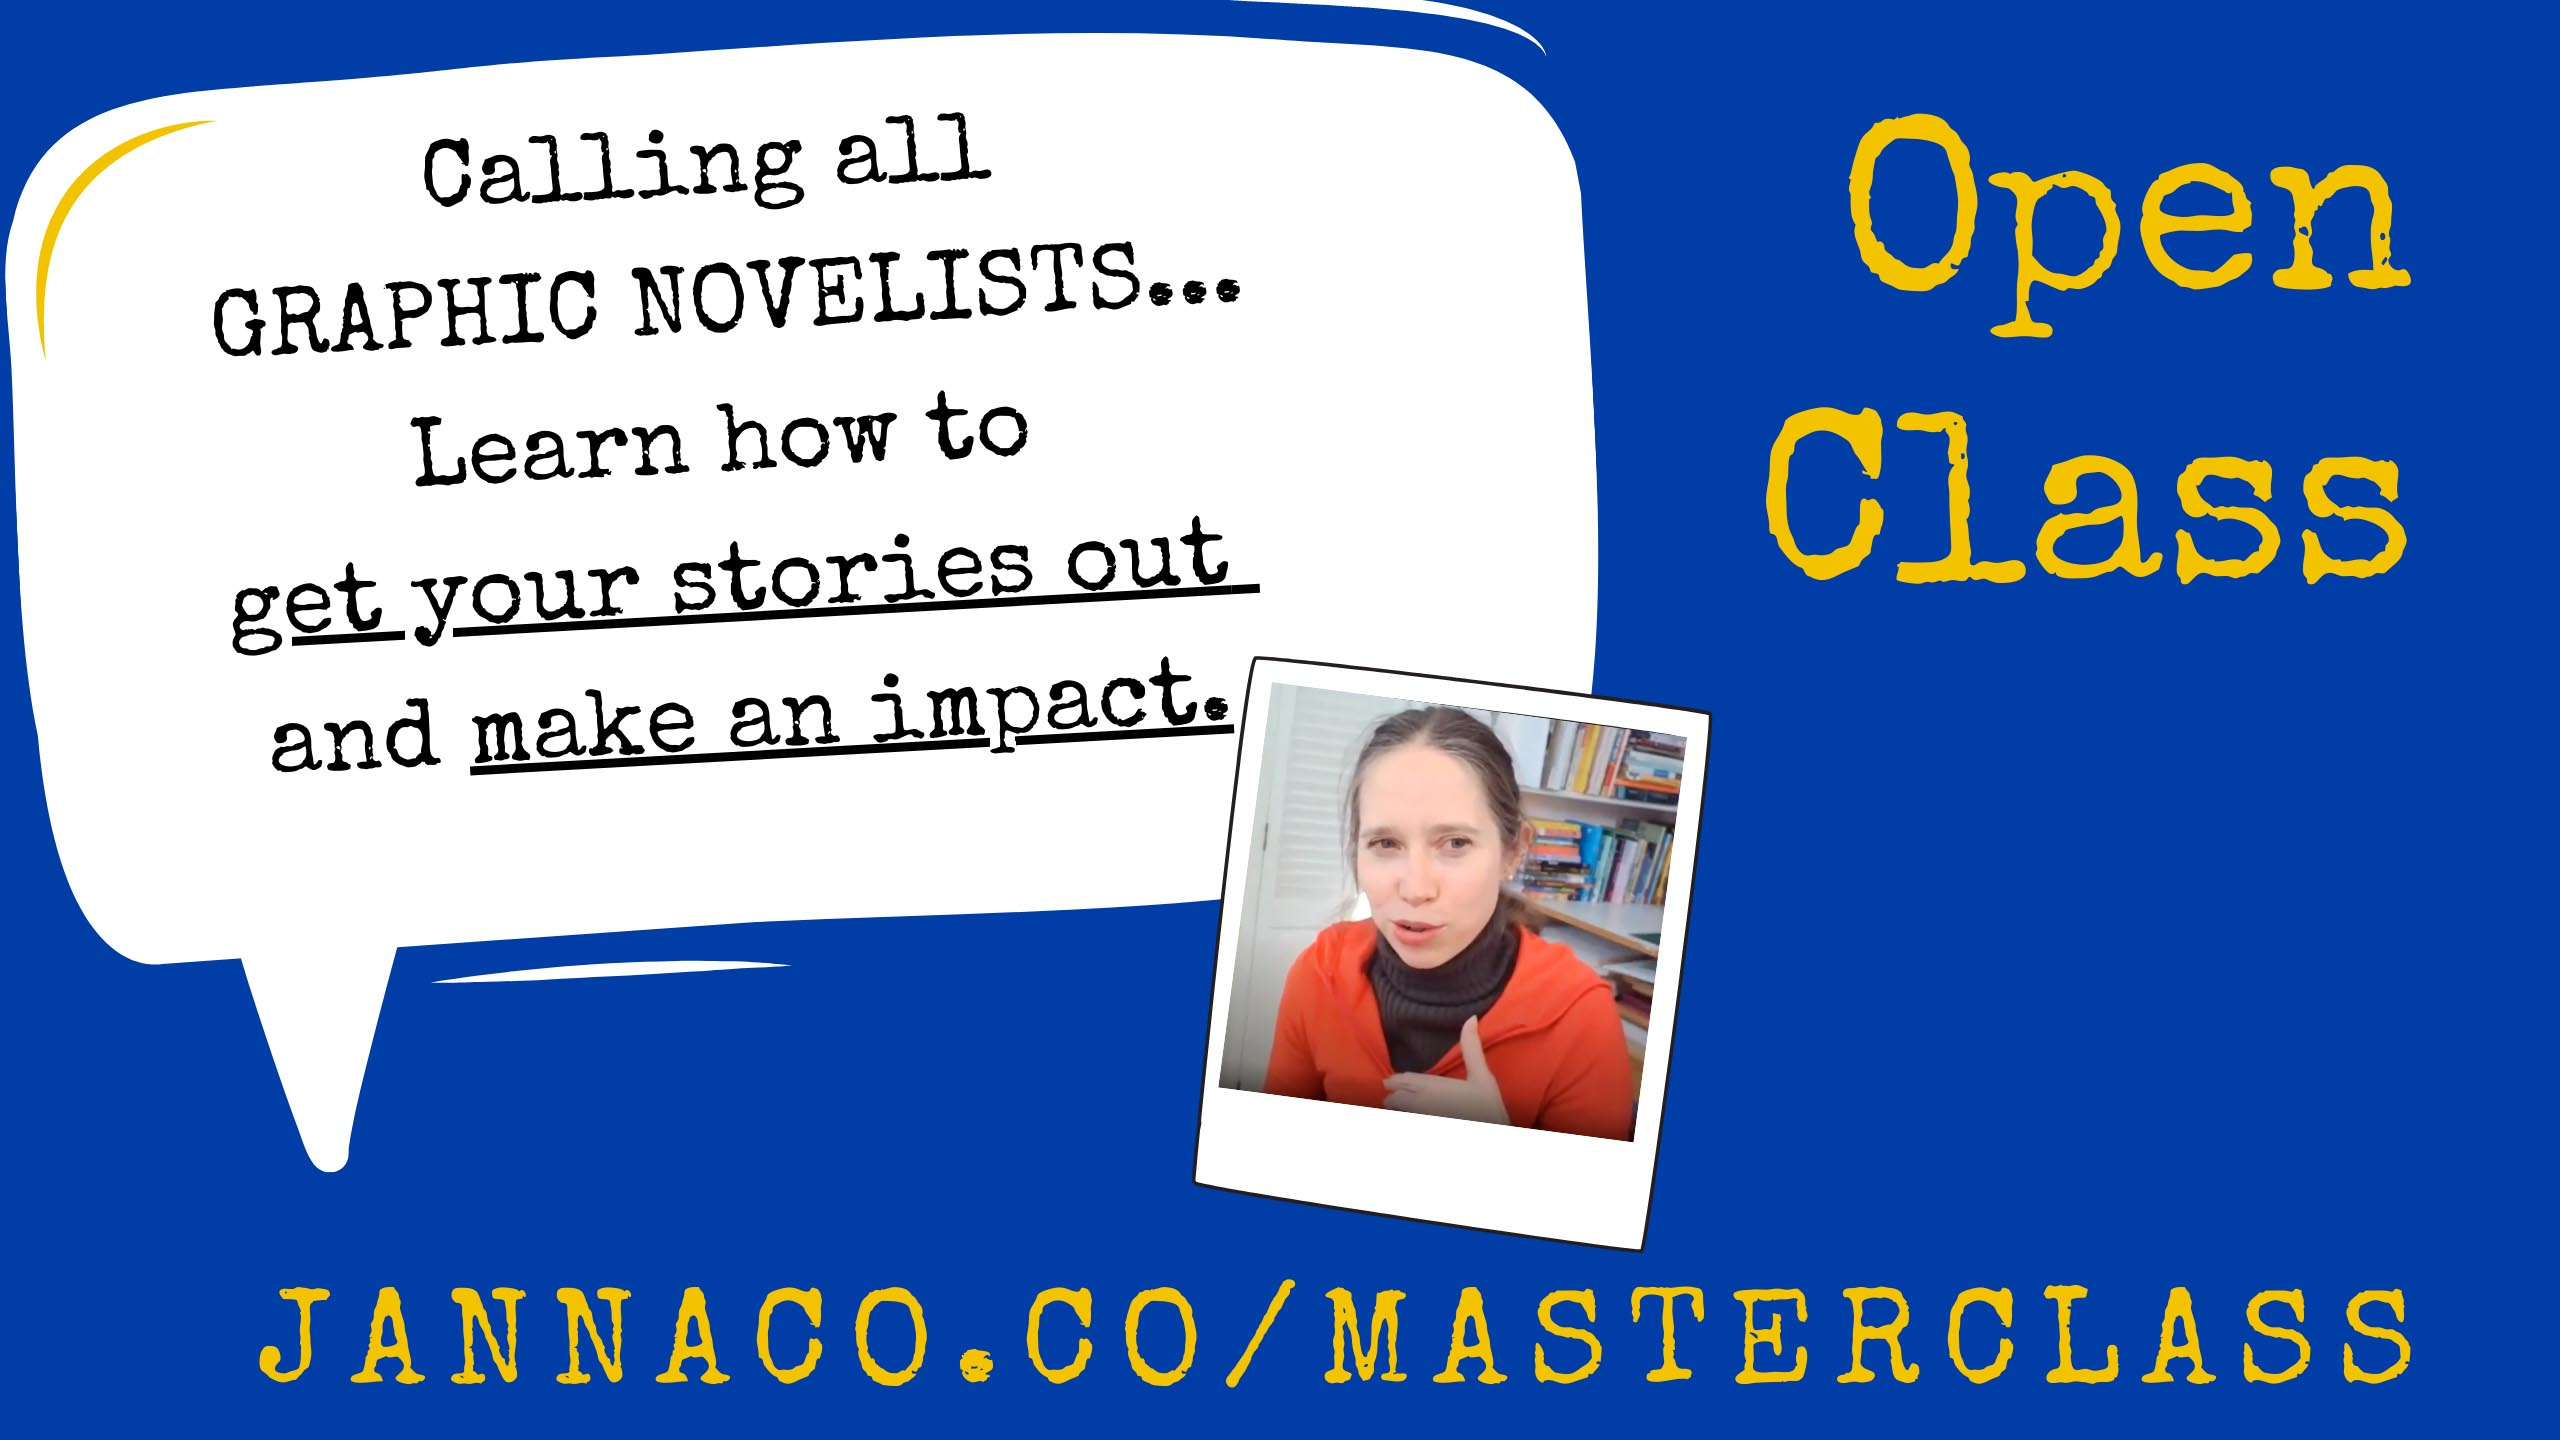 Want to learn more about how to build a successful career as a graphic novel creator? Join a free masterclass series taught by Janna Morishima, agent, and founder of Kids Comics Unite, starting on Saturday, Jan. 30th. Register here: https://jannaco.co/masterclass/